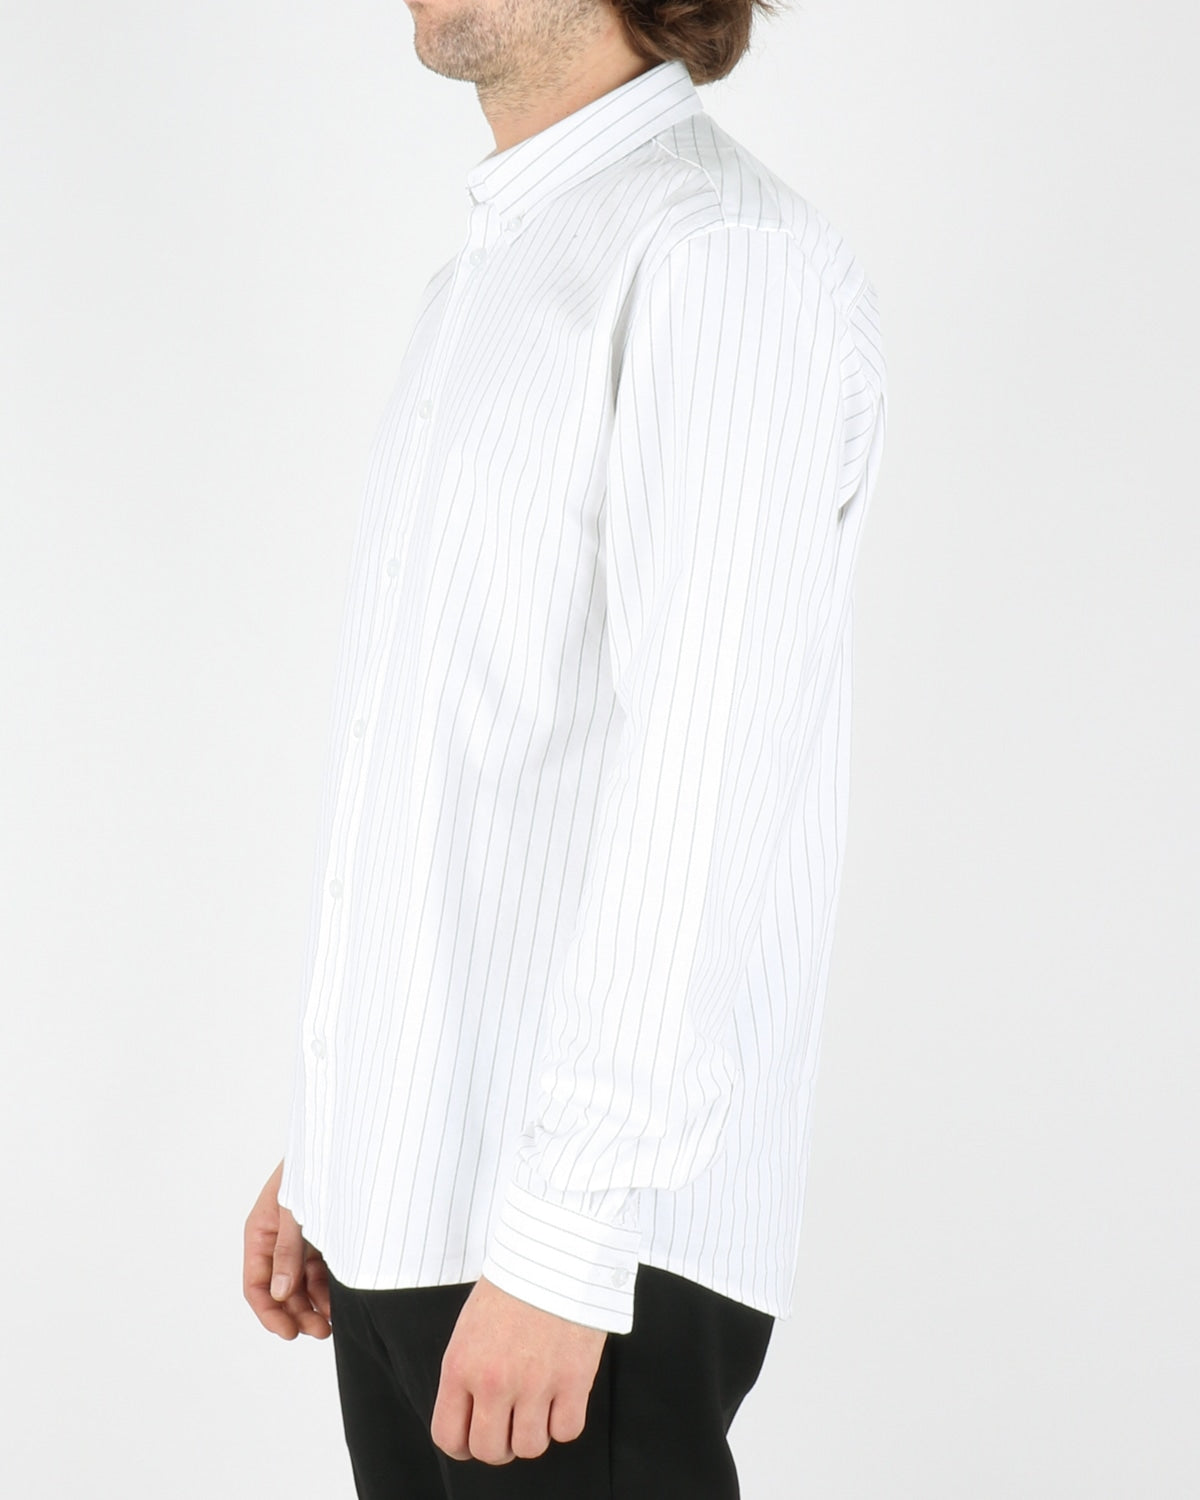 woodbird_trime stripe shirt_white grey_2_4